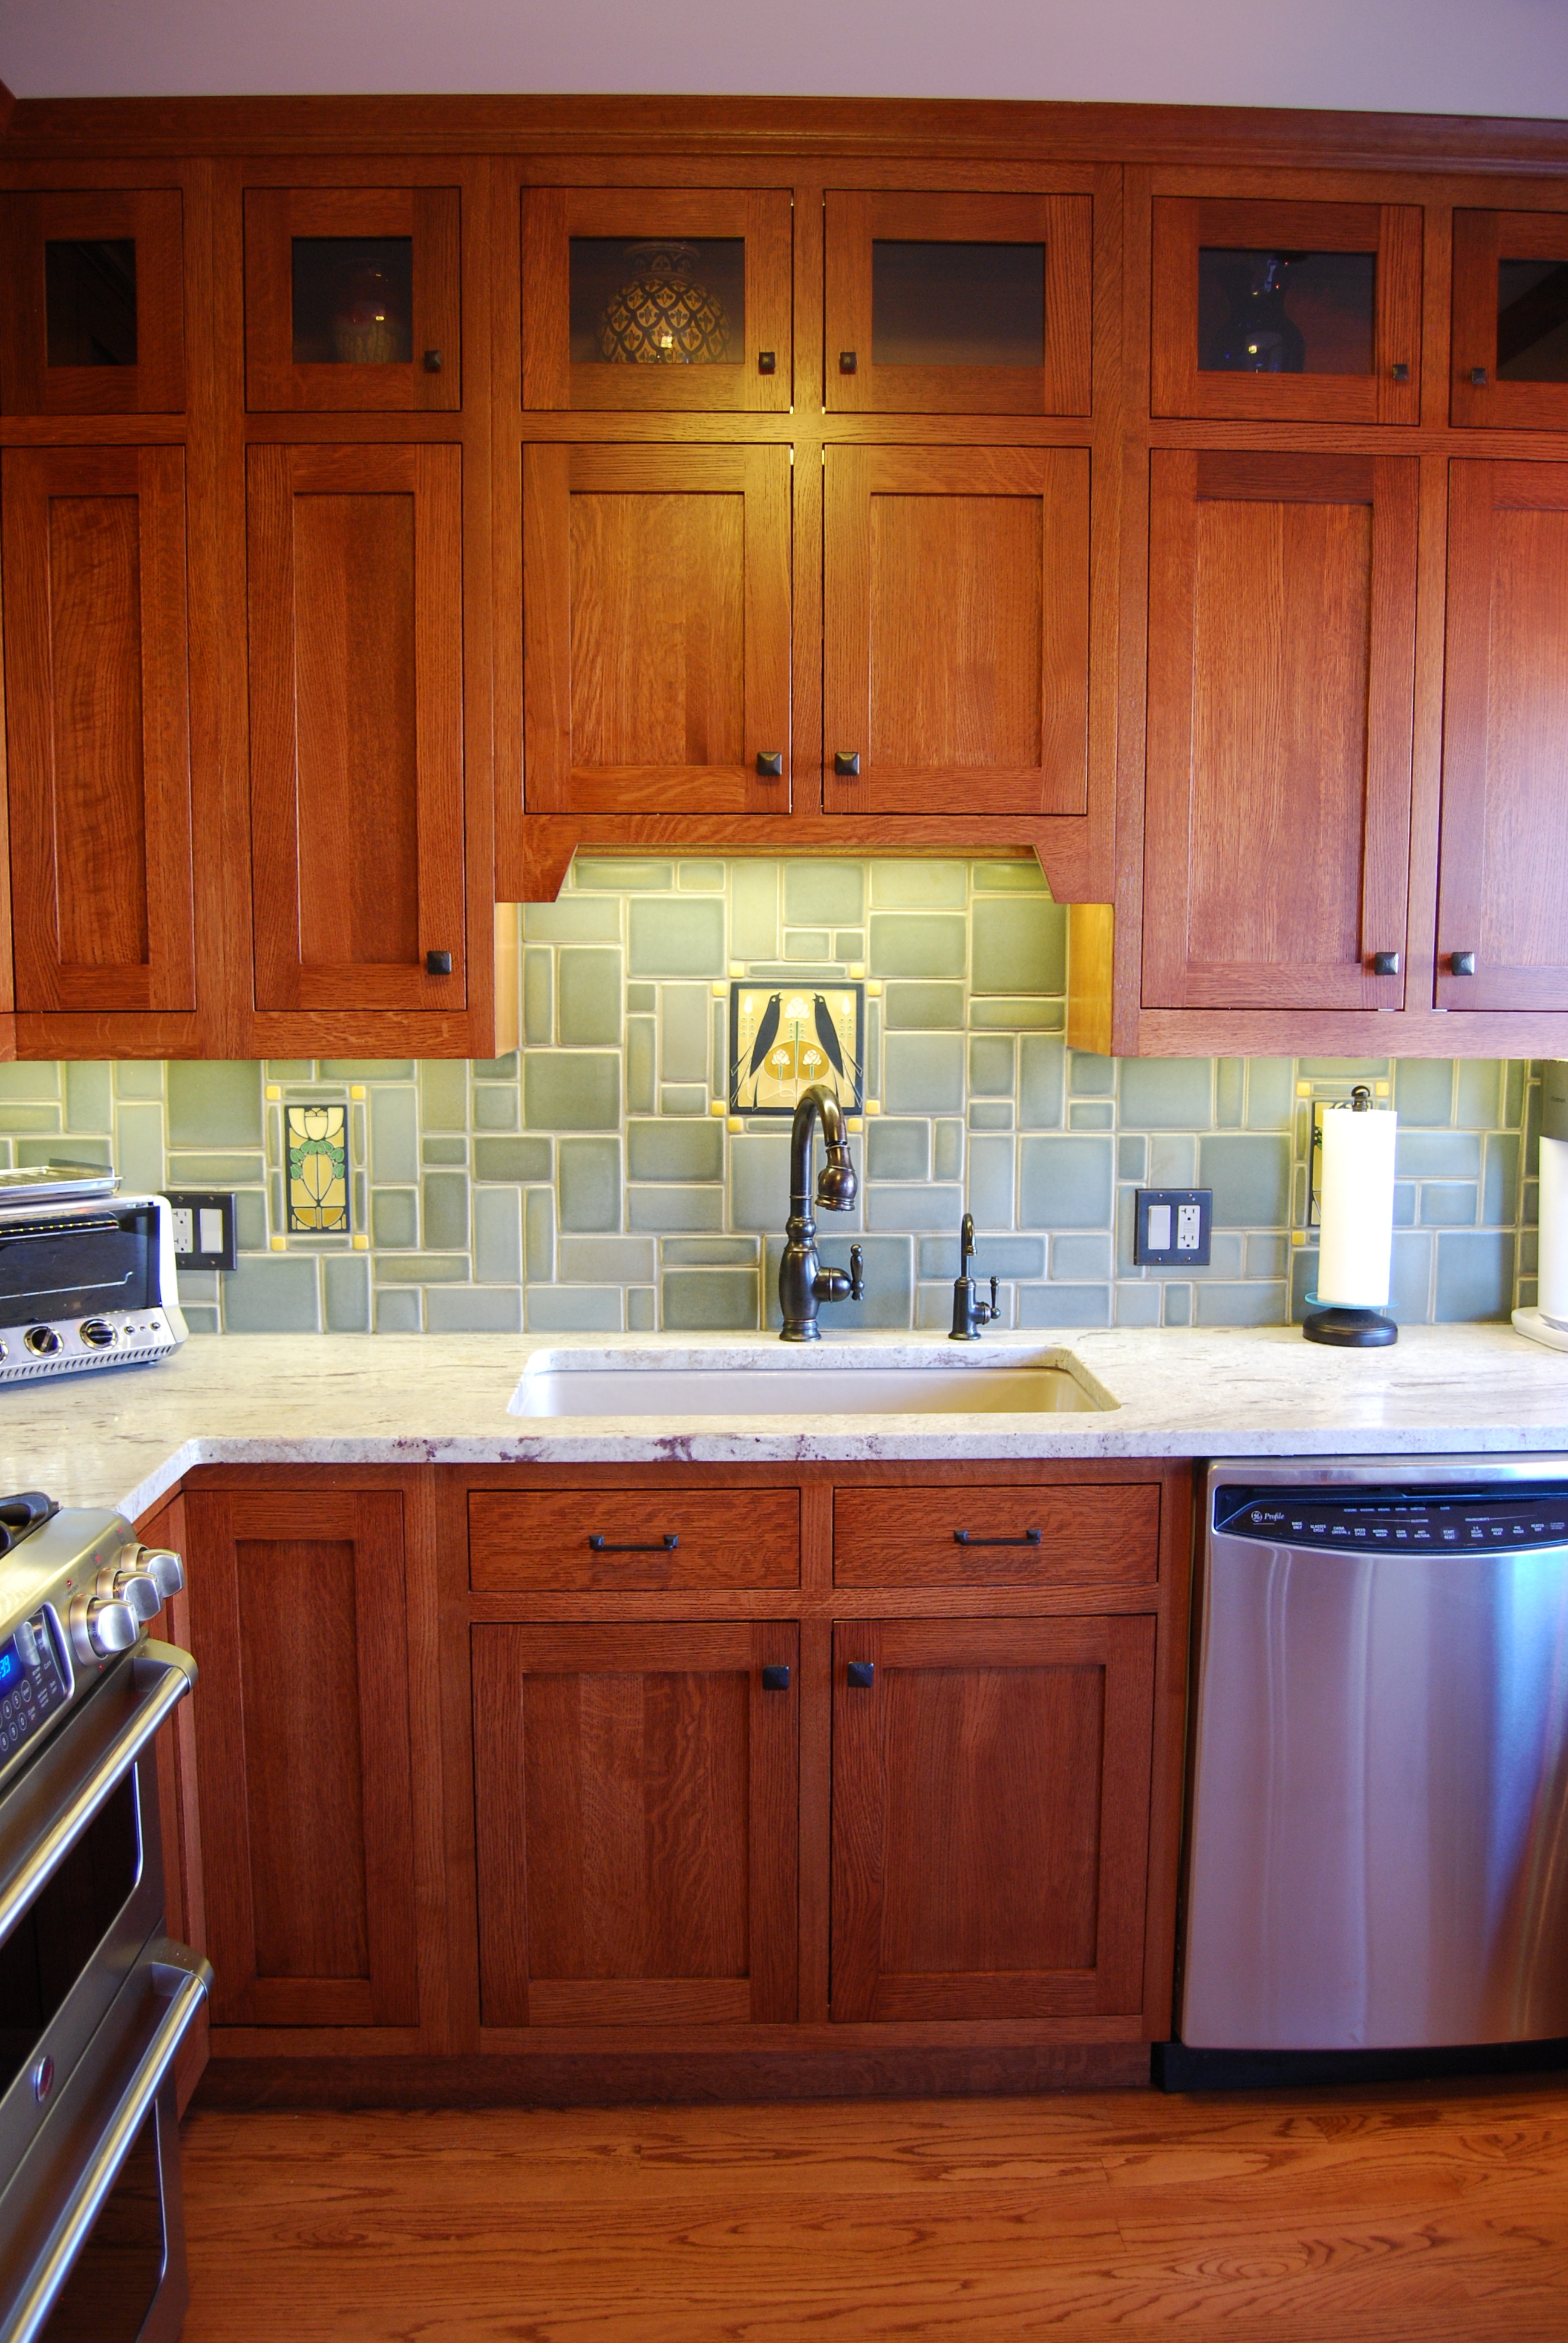 amish made kitchen cabinets custom sinks craftsman archives kitchens